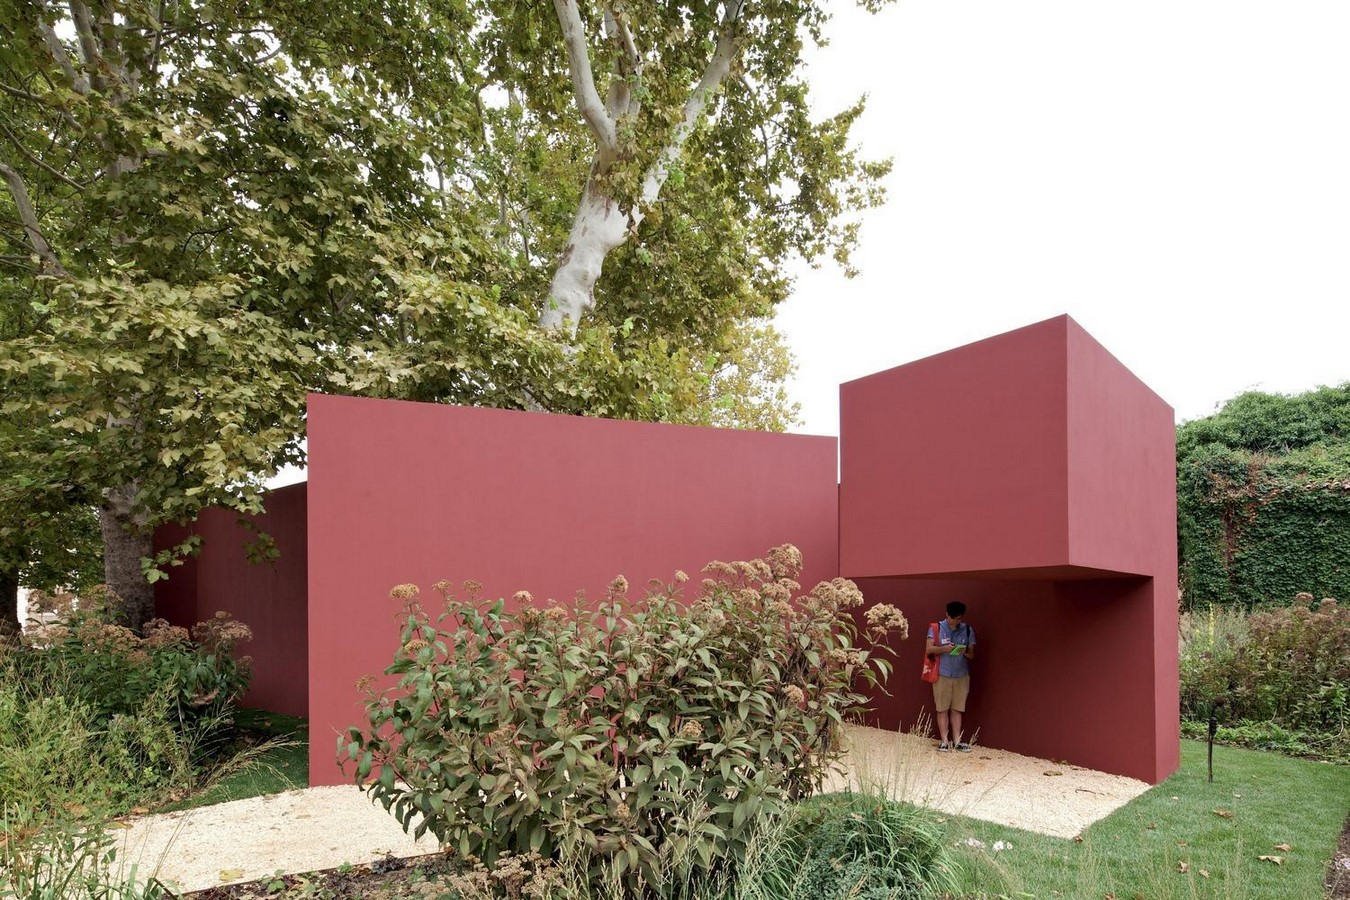 10 Things you did not know about Álvaro Siza - Sheet5